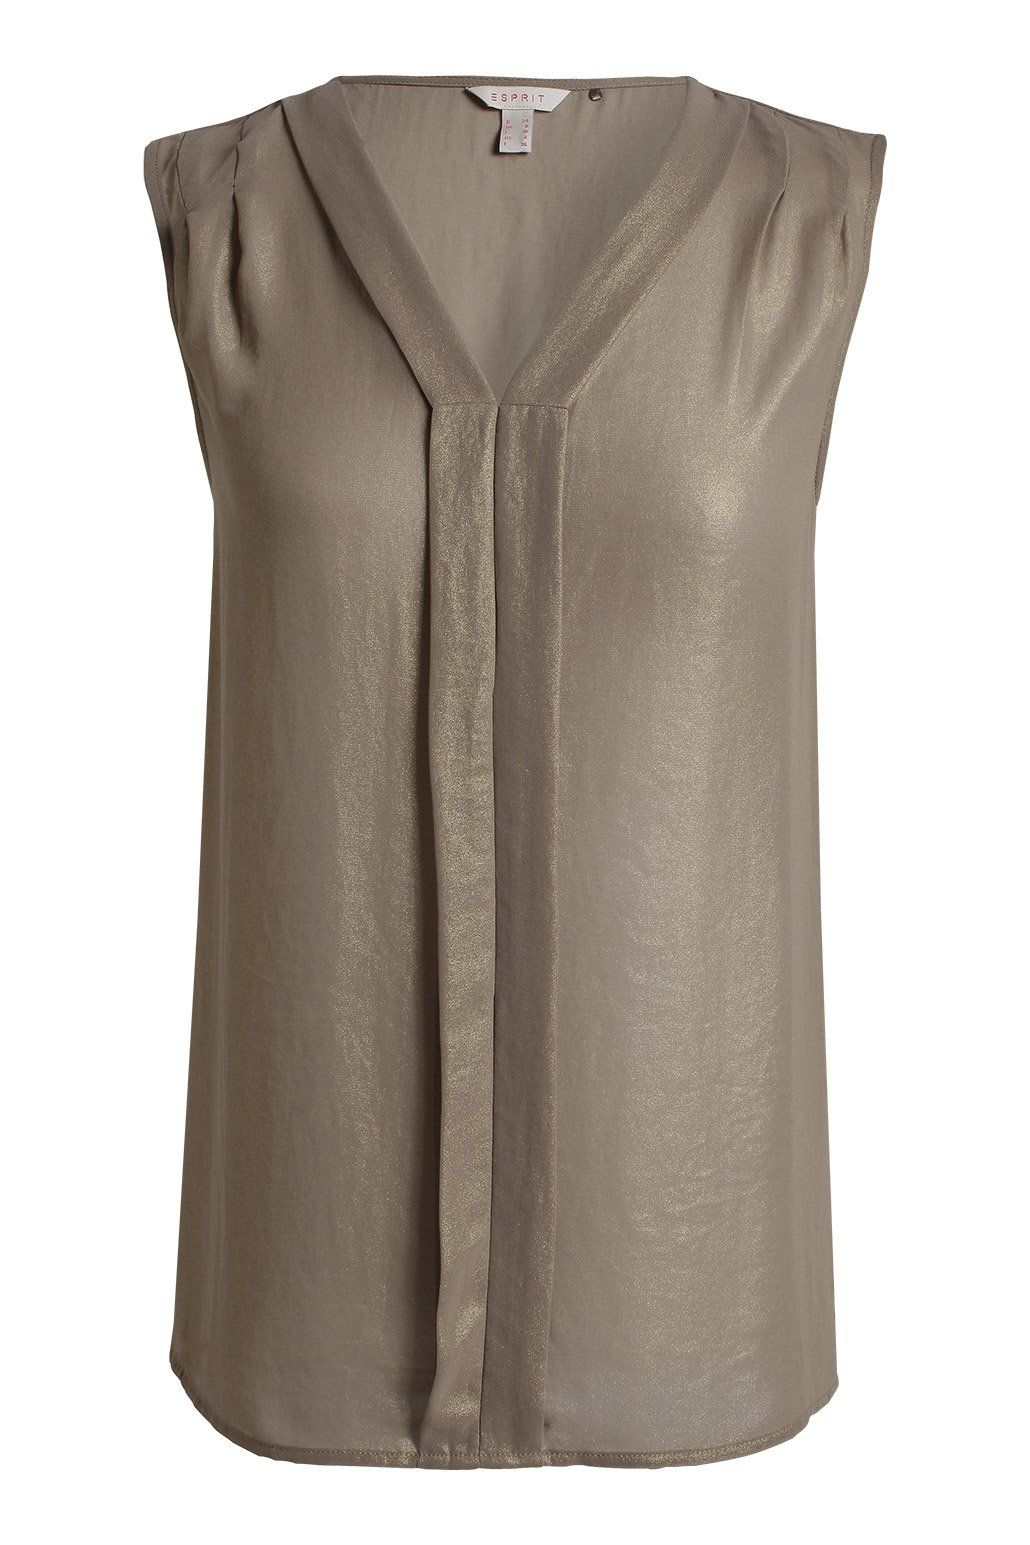 Esprit glittering chiffon #blouse, inspiration for a blue top ...